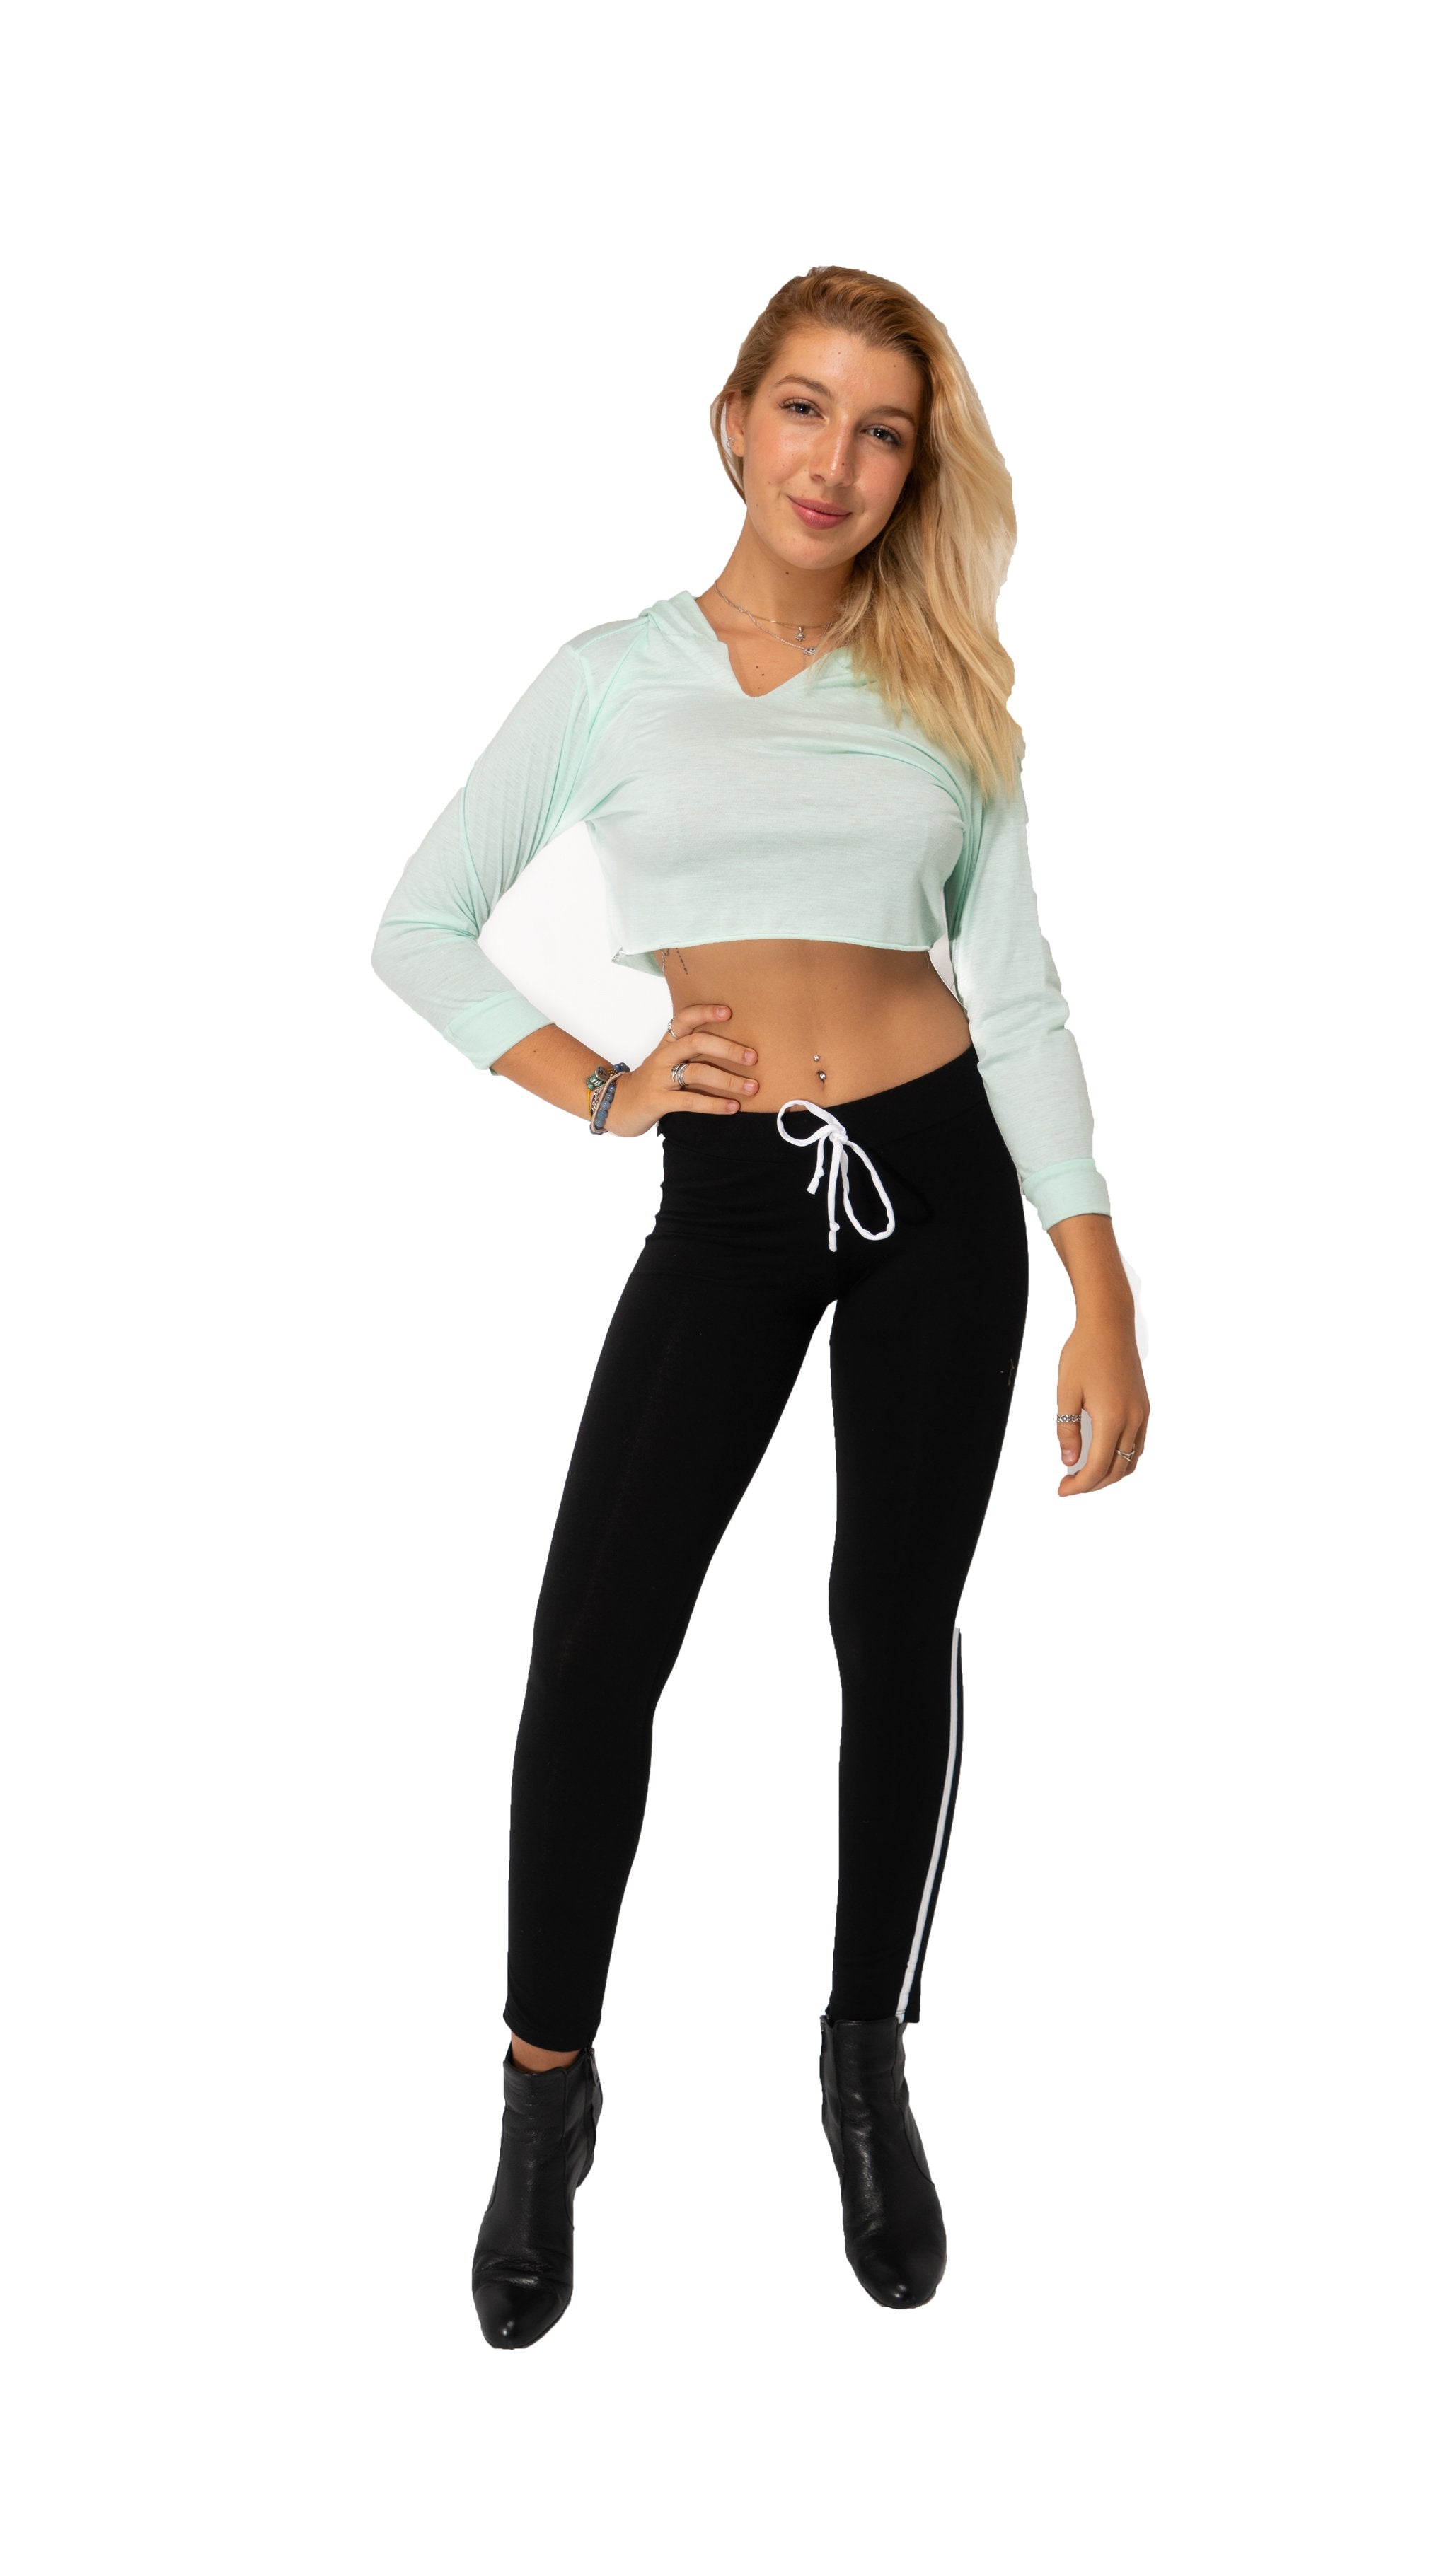 CUT THE CROP Top Long Sleeves Hoodie